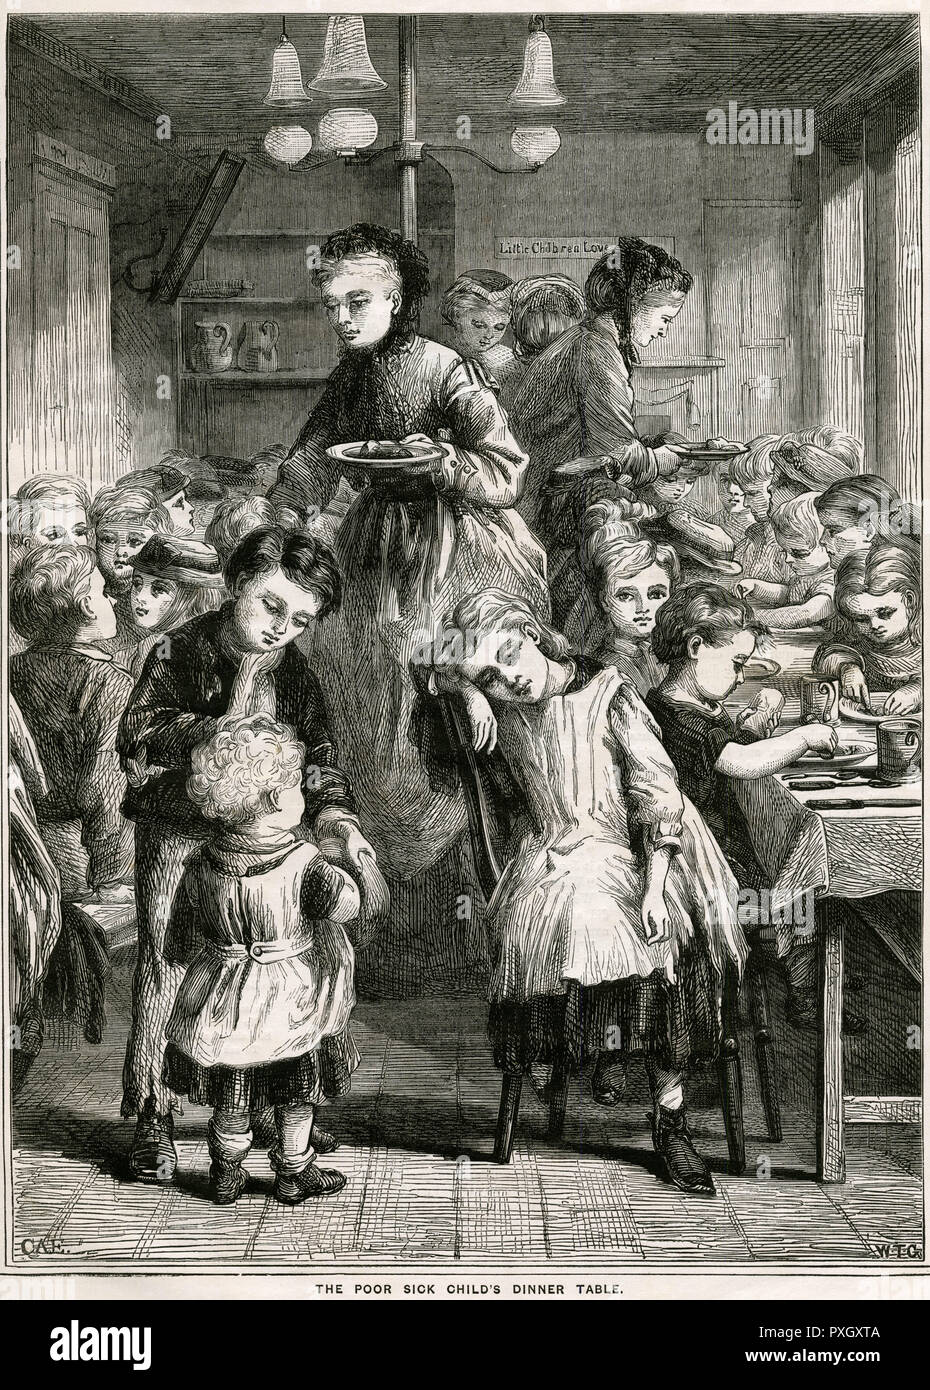 Thousands of children in London were not receiving nutritious foods, many poor youngsters were not getting warm dinners during the winter months, bread formed a chief amount of their diets. Many children became sick and weary and frequently died a premature death. 'Children's Dinners, a Christian charity was set up, found in localities inhabited by poor and needy, one of theses establishments was at Wolburn Buildings, near St. Pancras Church, London. Dinners like roast meat and potatoes with an orange or a piece of cake for dessert were provided all year round for every child who brought a tic - Stock Image